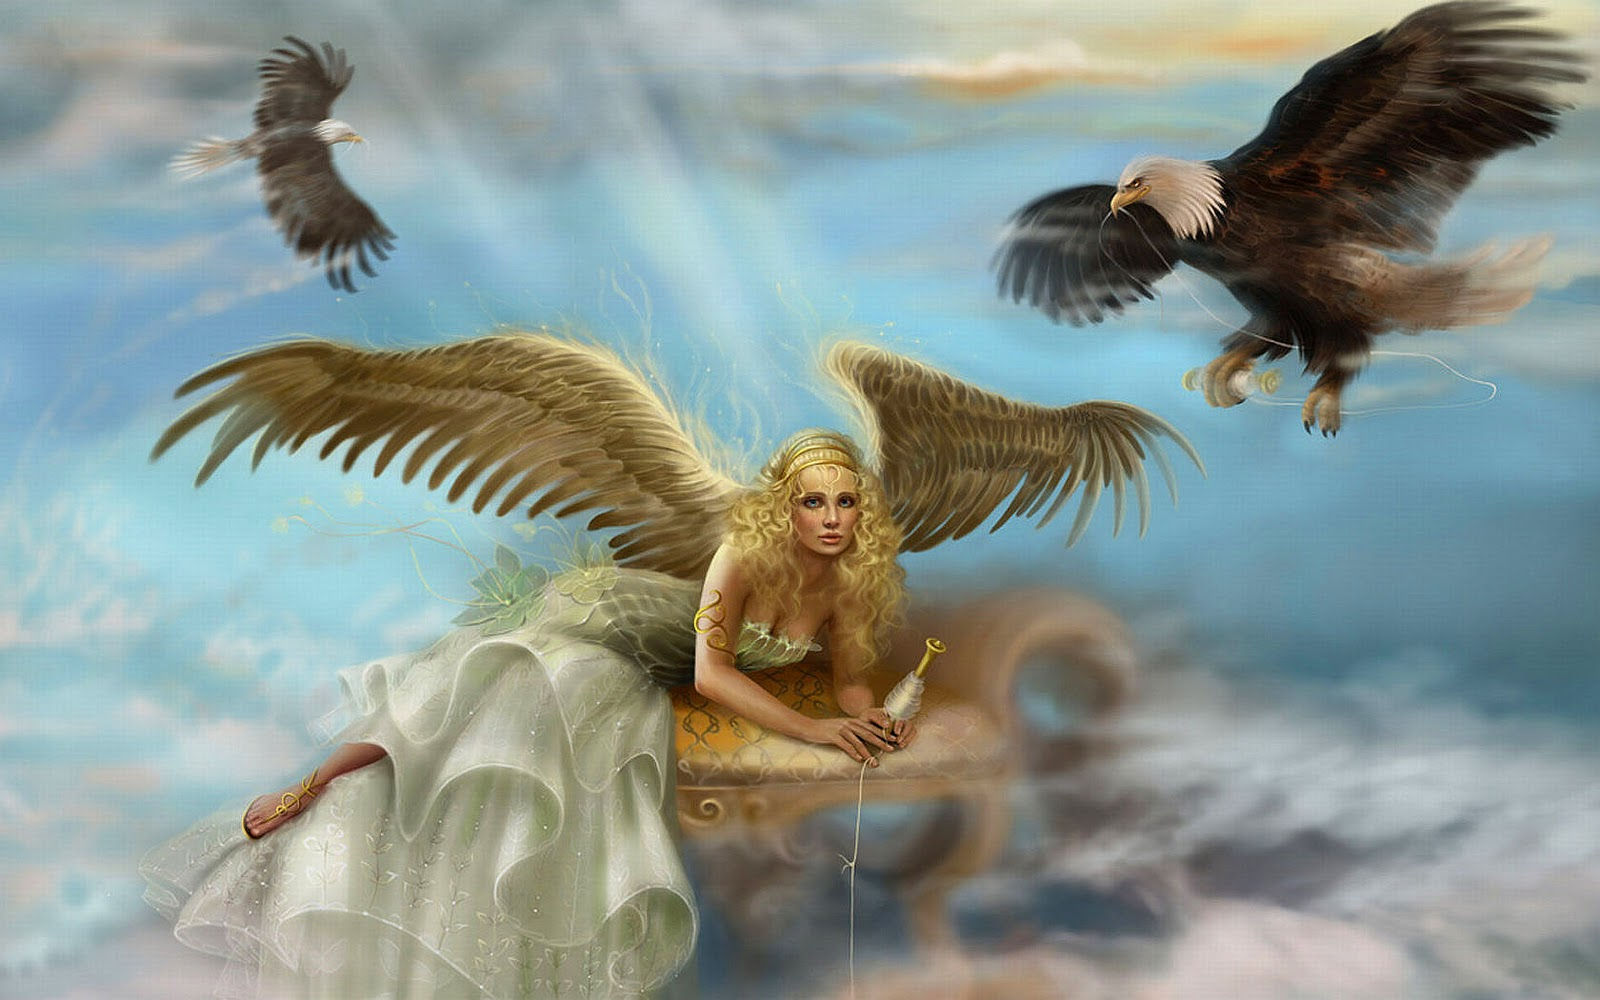 Angel Wallpapers Hot Girls Wallpapers Desktop wallpapers Desktop HD 1600x1000